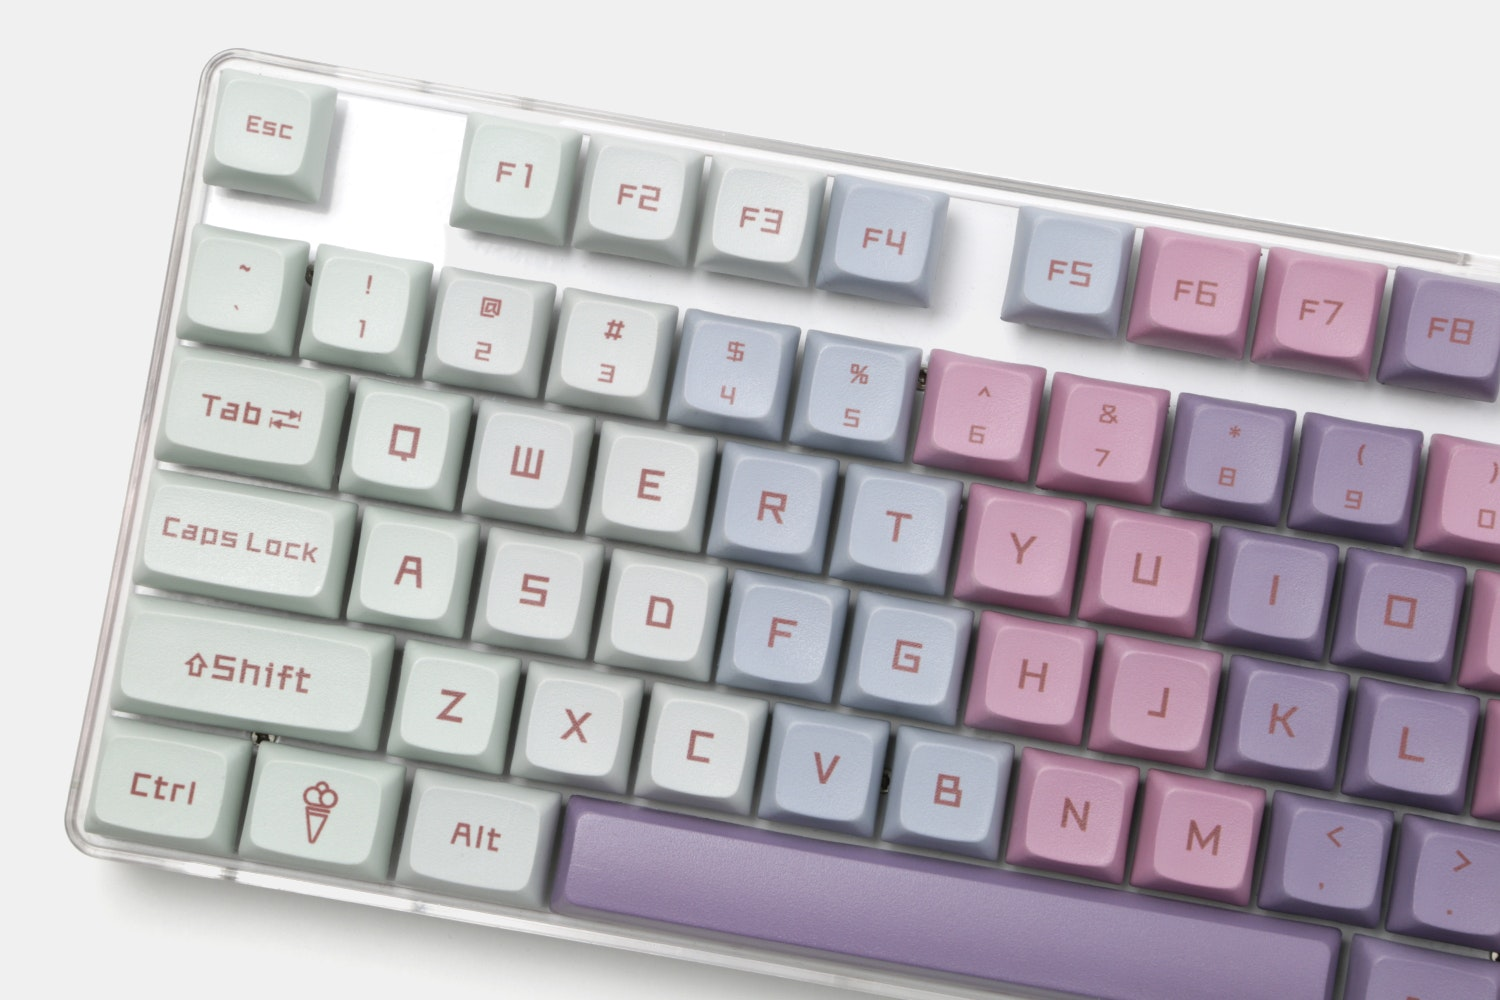 Ice Cream PBT All Over Dye-Subbed Keycap Set